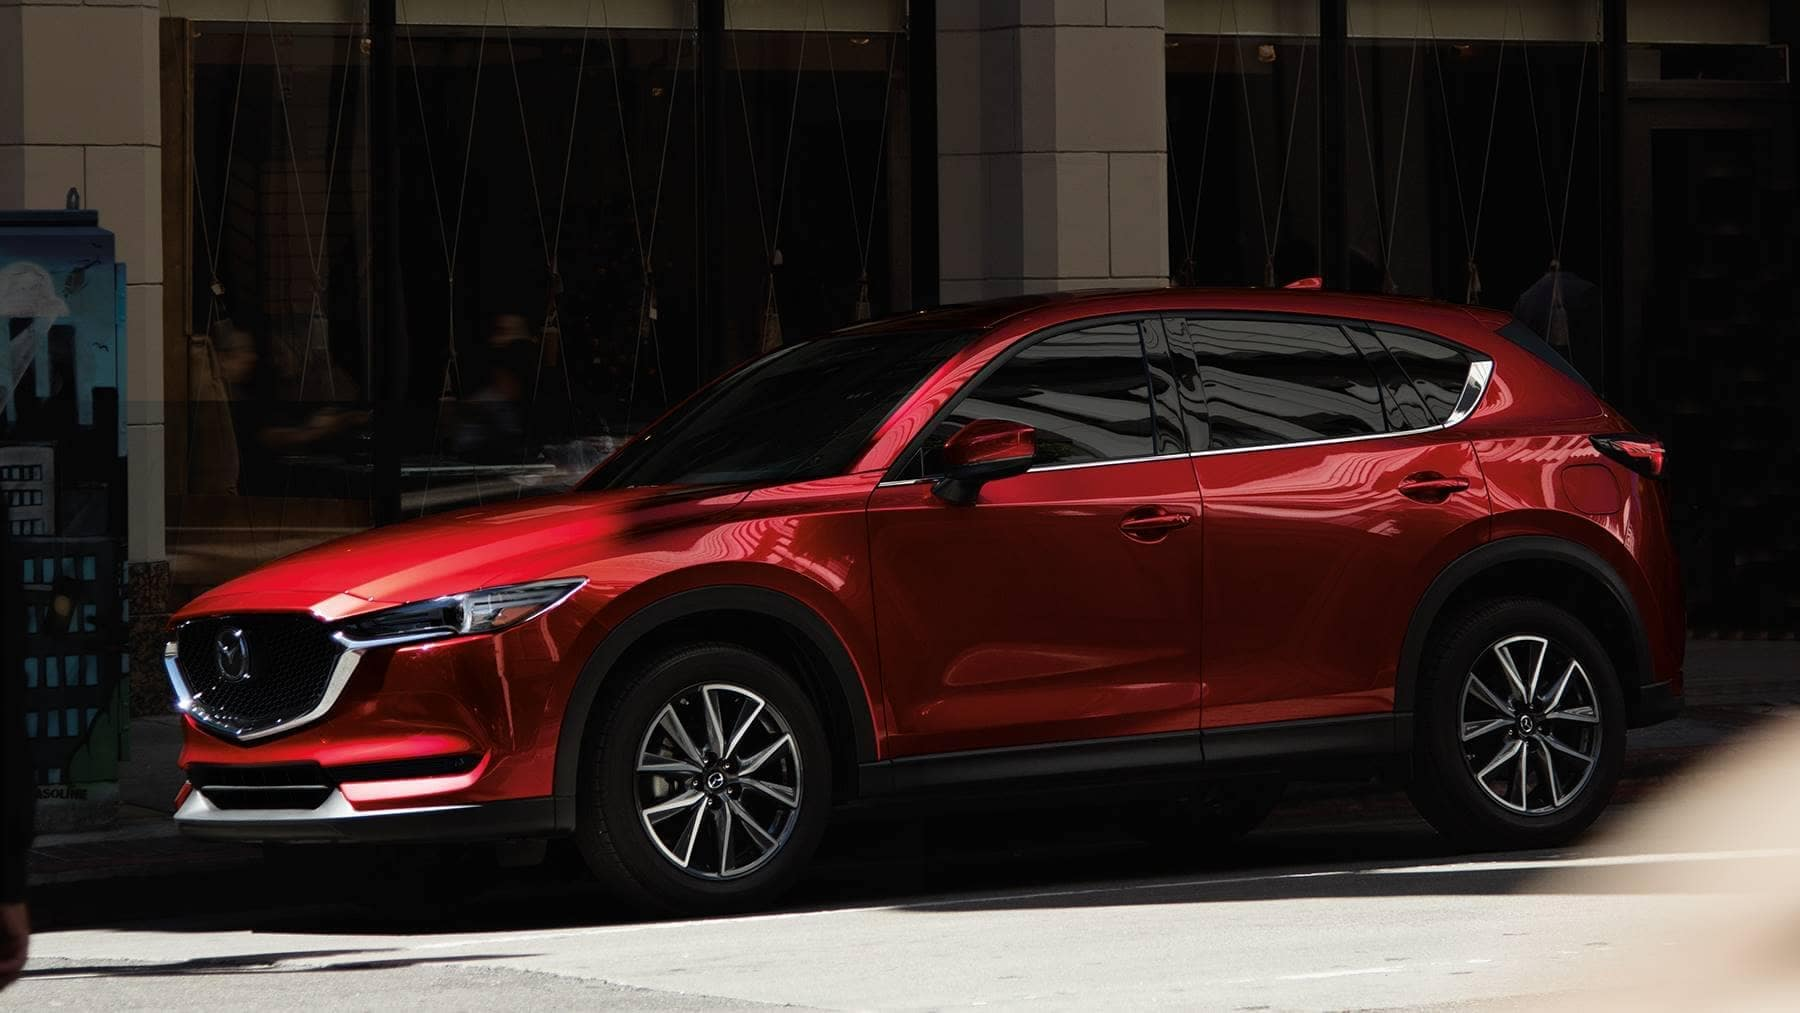 2018 Mazda CX-5 fuel efficient SUV